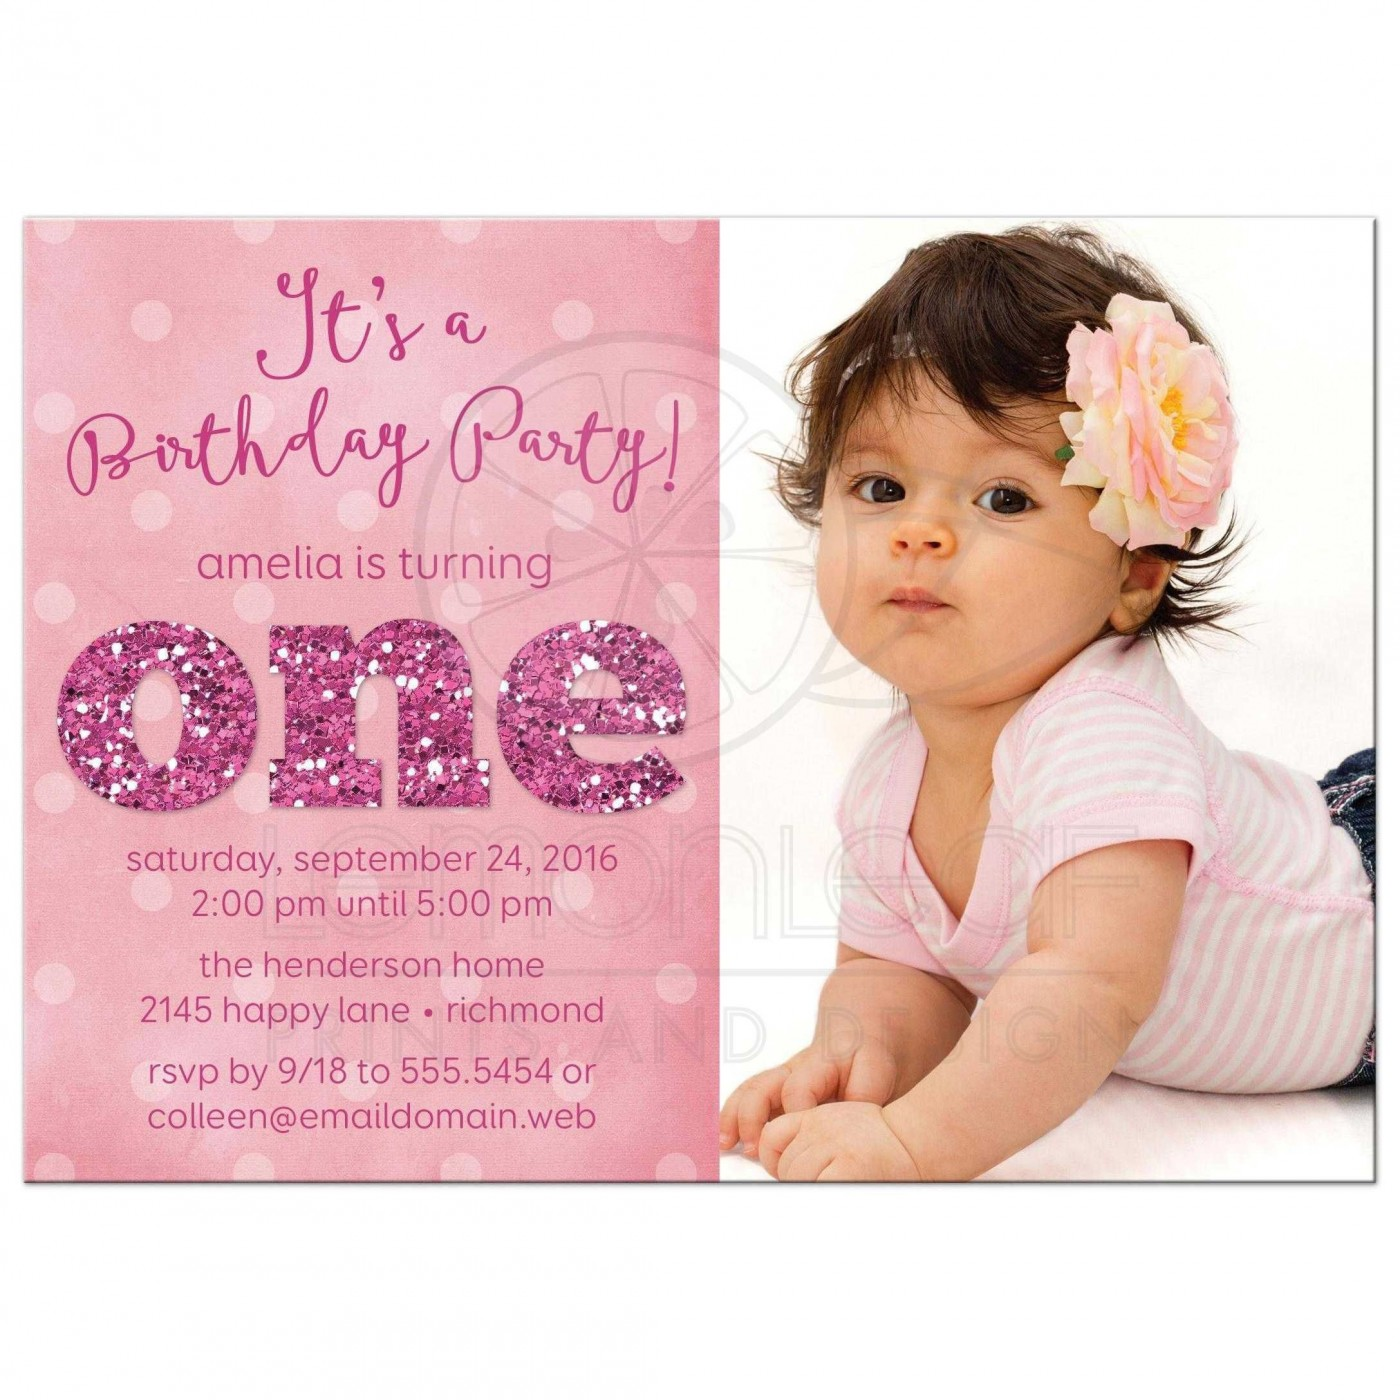 006 Archaicawful Free Online 1st Birthday Invitation Card Maker For Twin Inspiration 1400